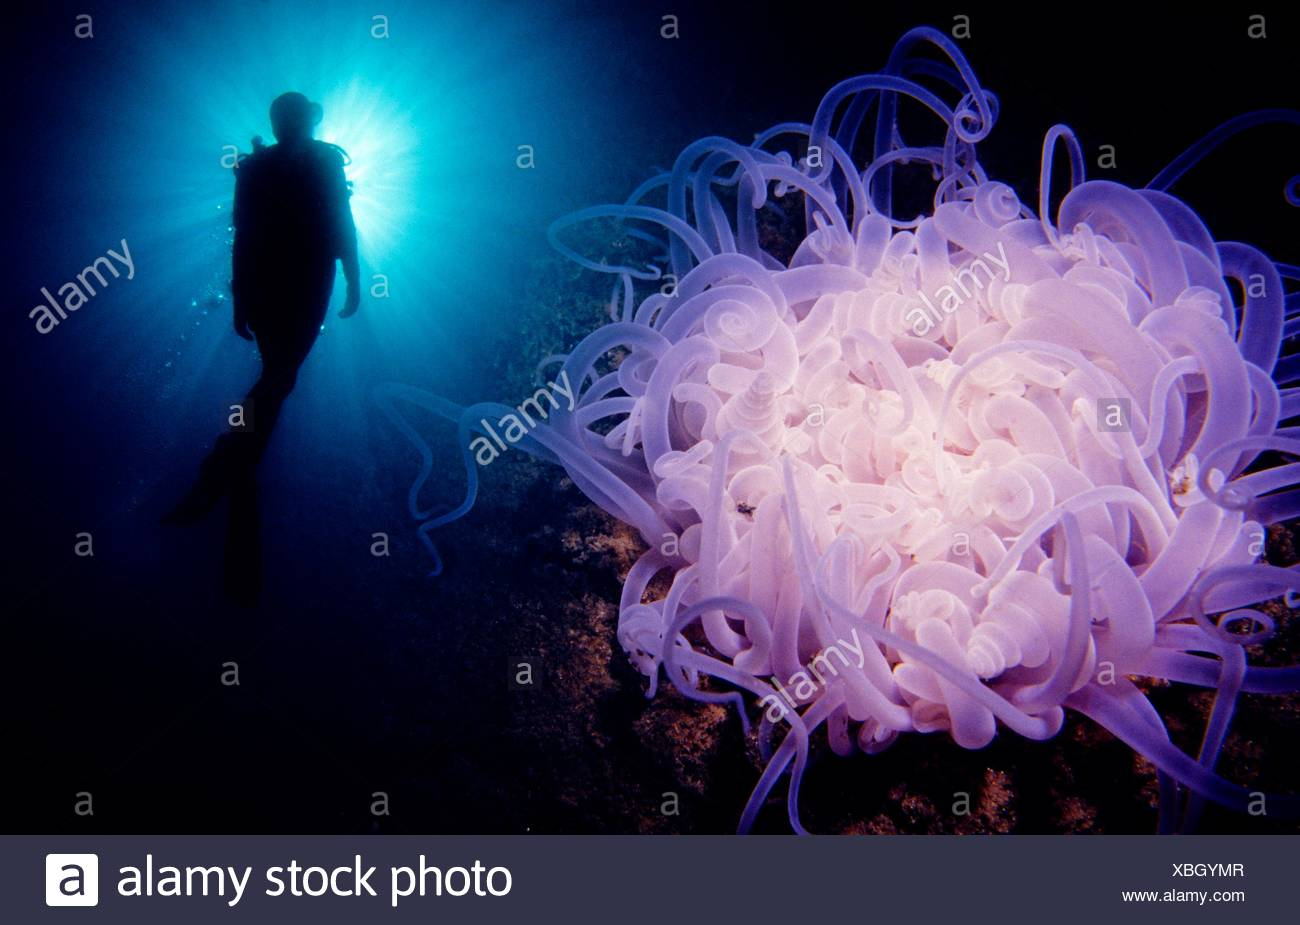 Diver and Tube-dwelling Anemone (Cerianthus lloydii), Eastern Atlantic, Galicia, Spain - Stock Image